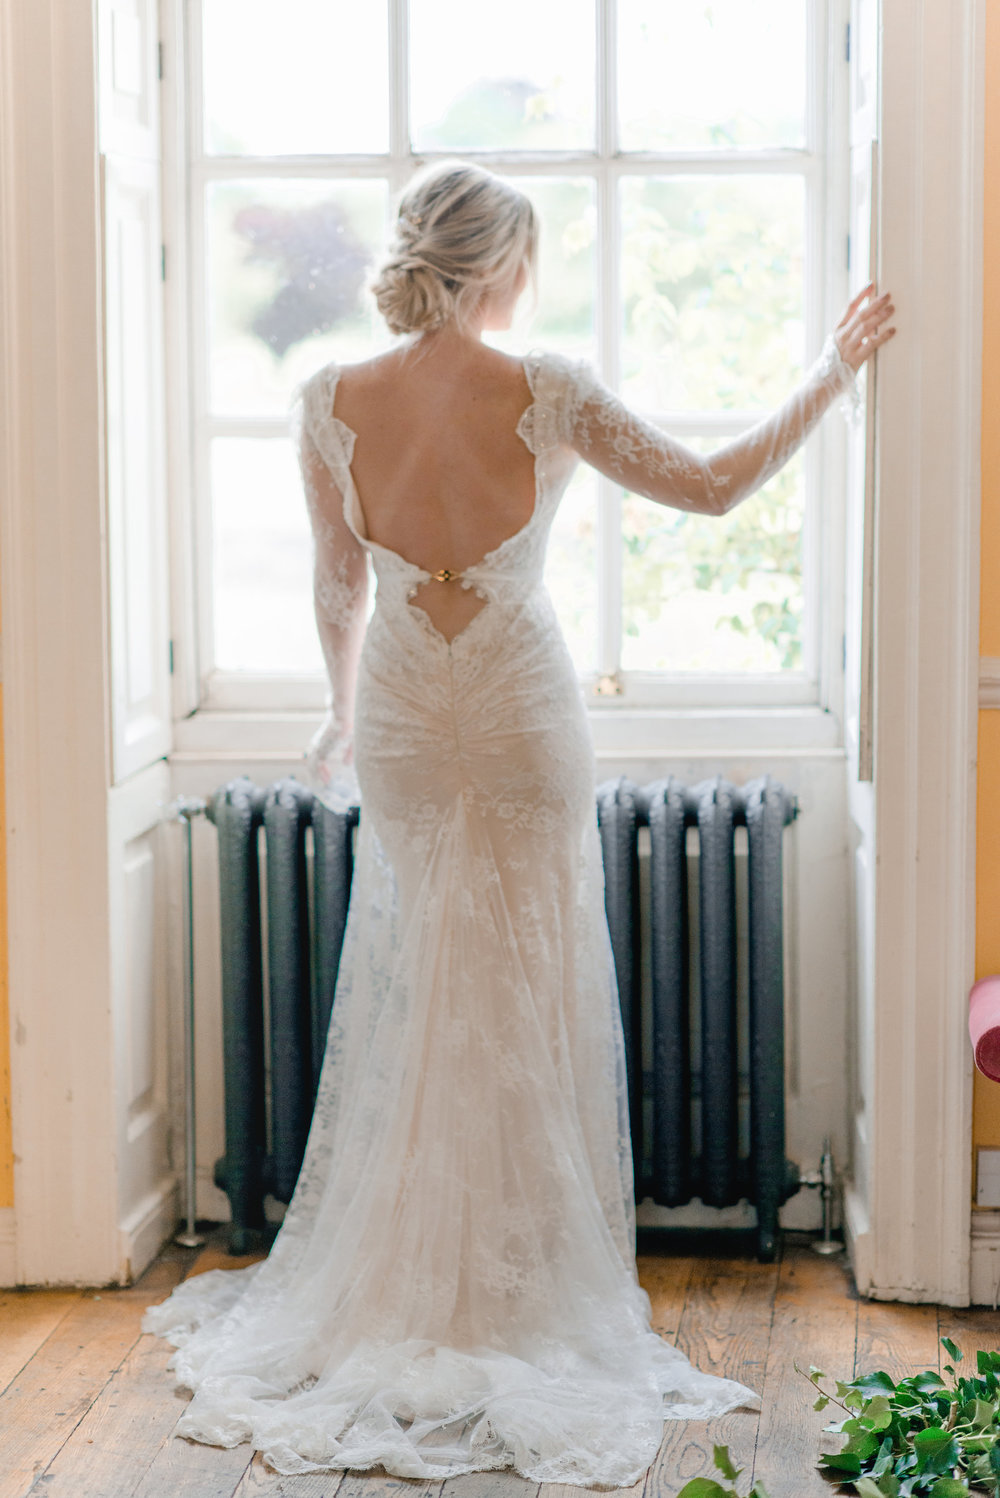 The Timeless Stylist-Elegant and Romantic Wedding Styling-Long Sleeved Lace Wedding Dress